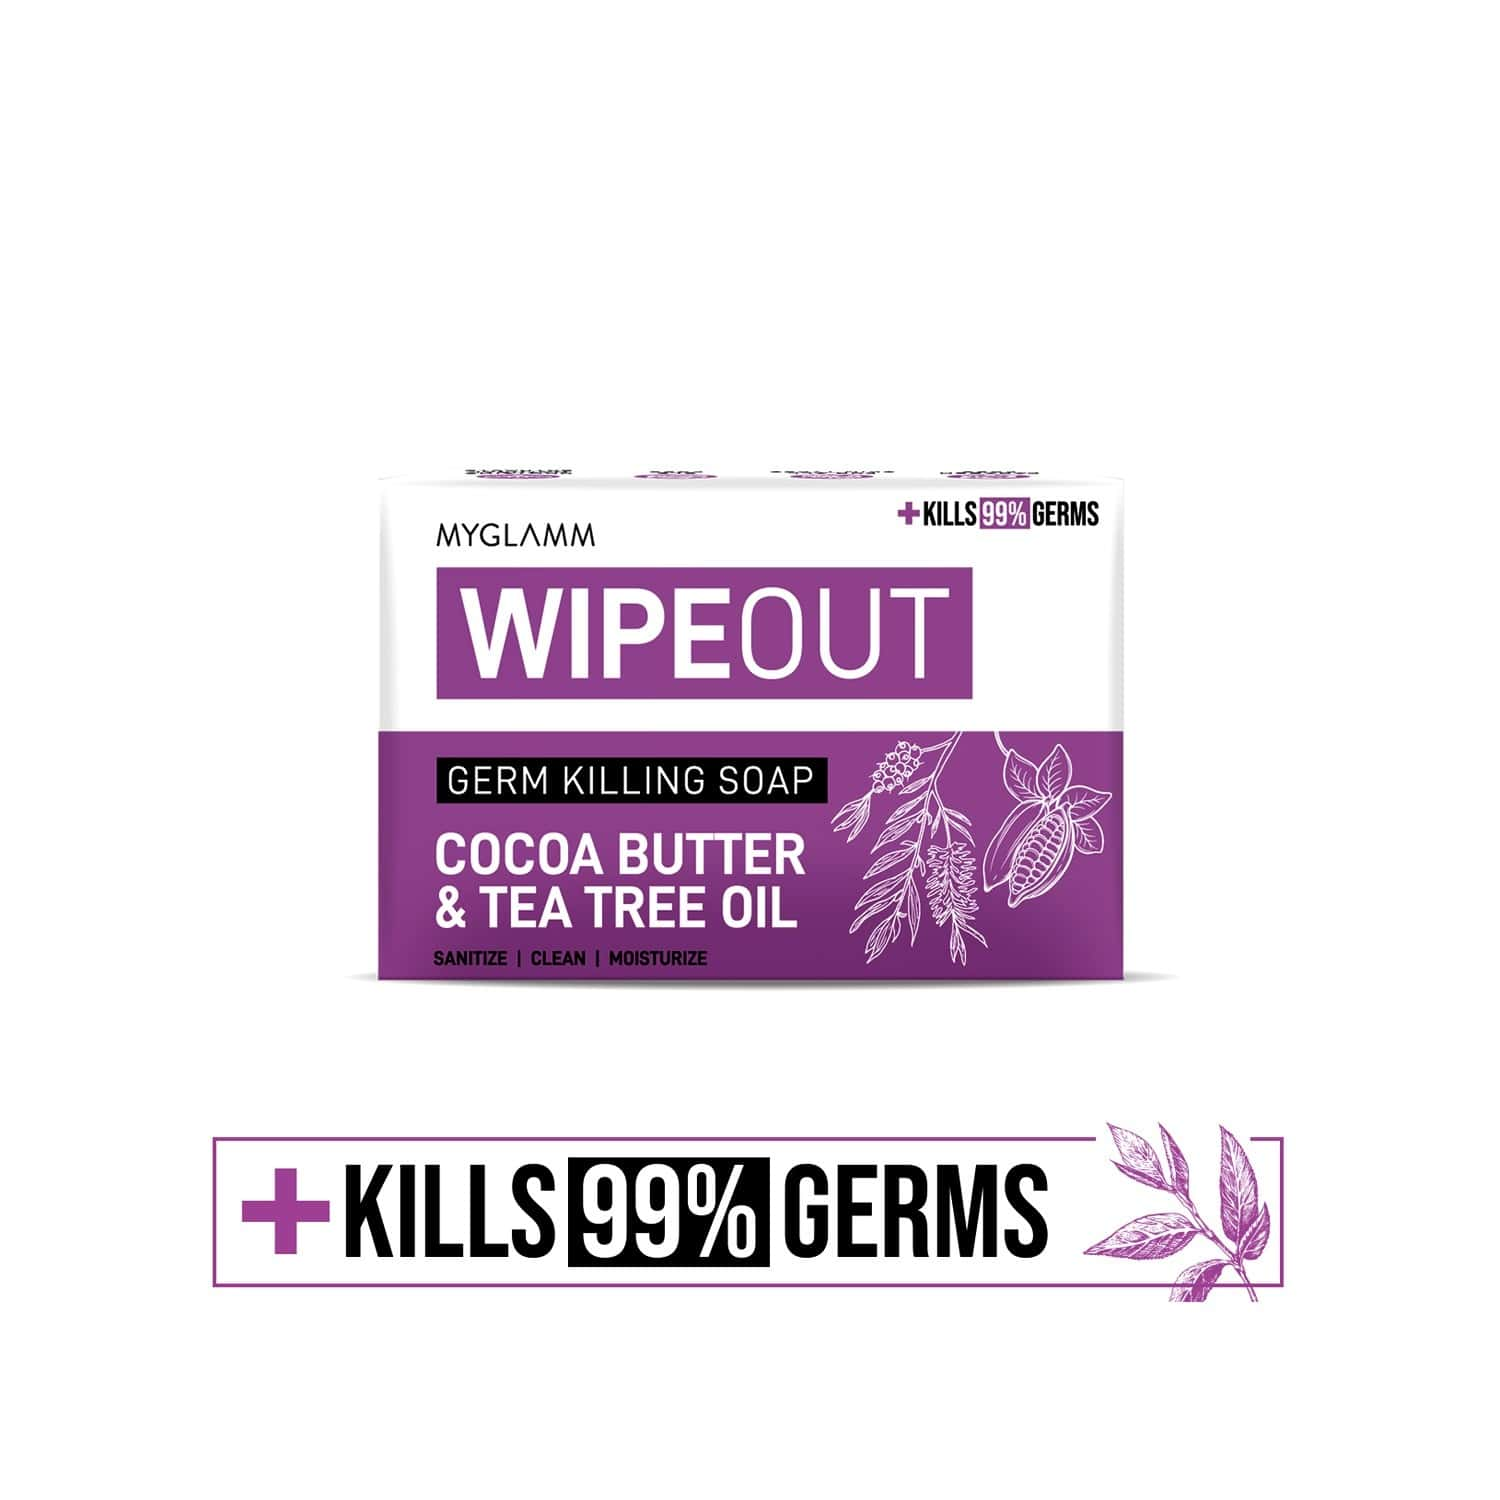 Wipeout Germ Killing Soap - 75g